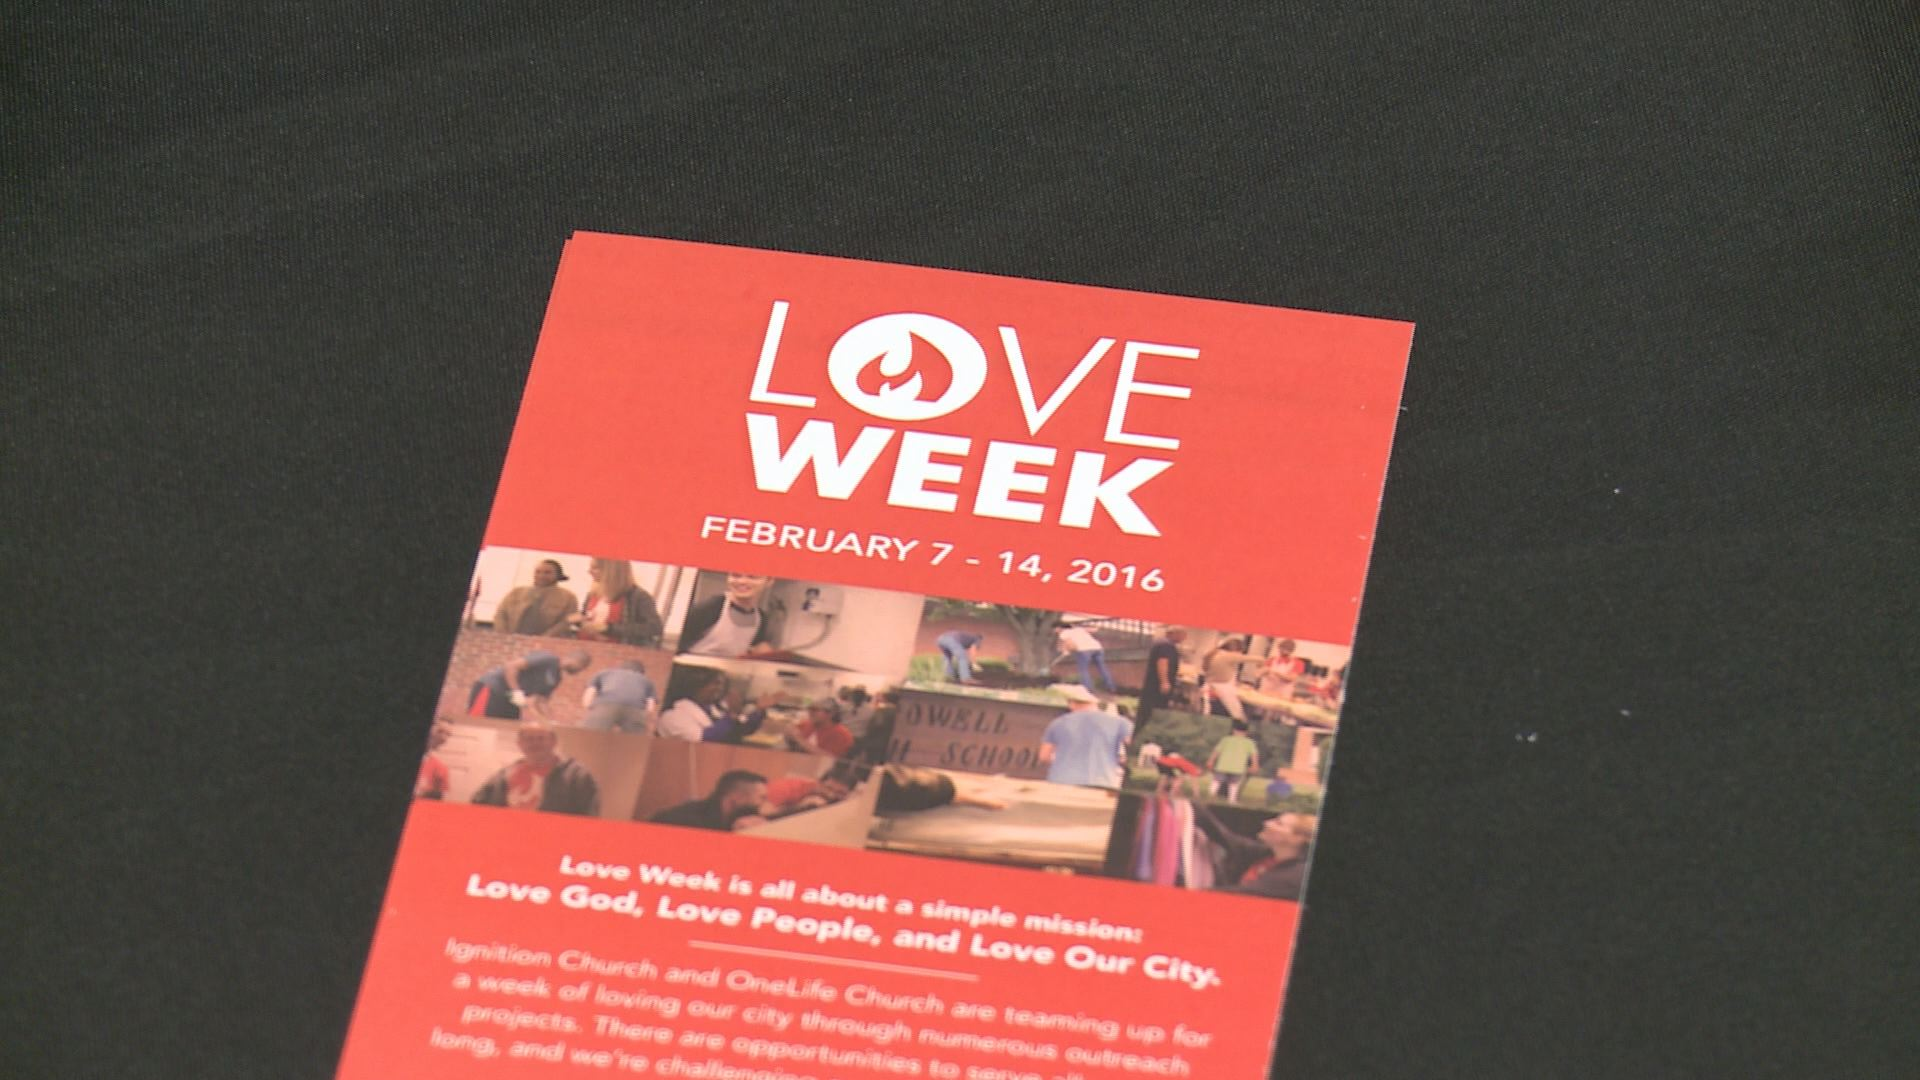 Two churches team up to spread love...